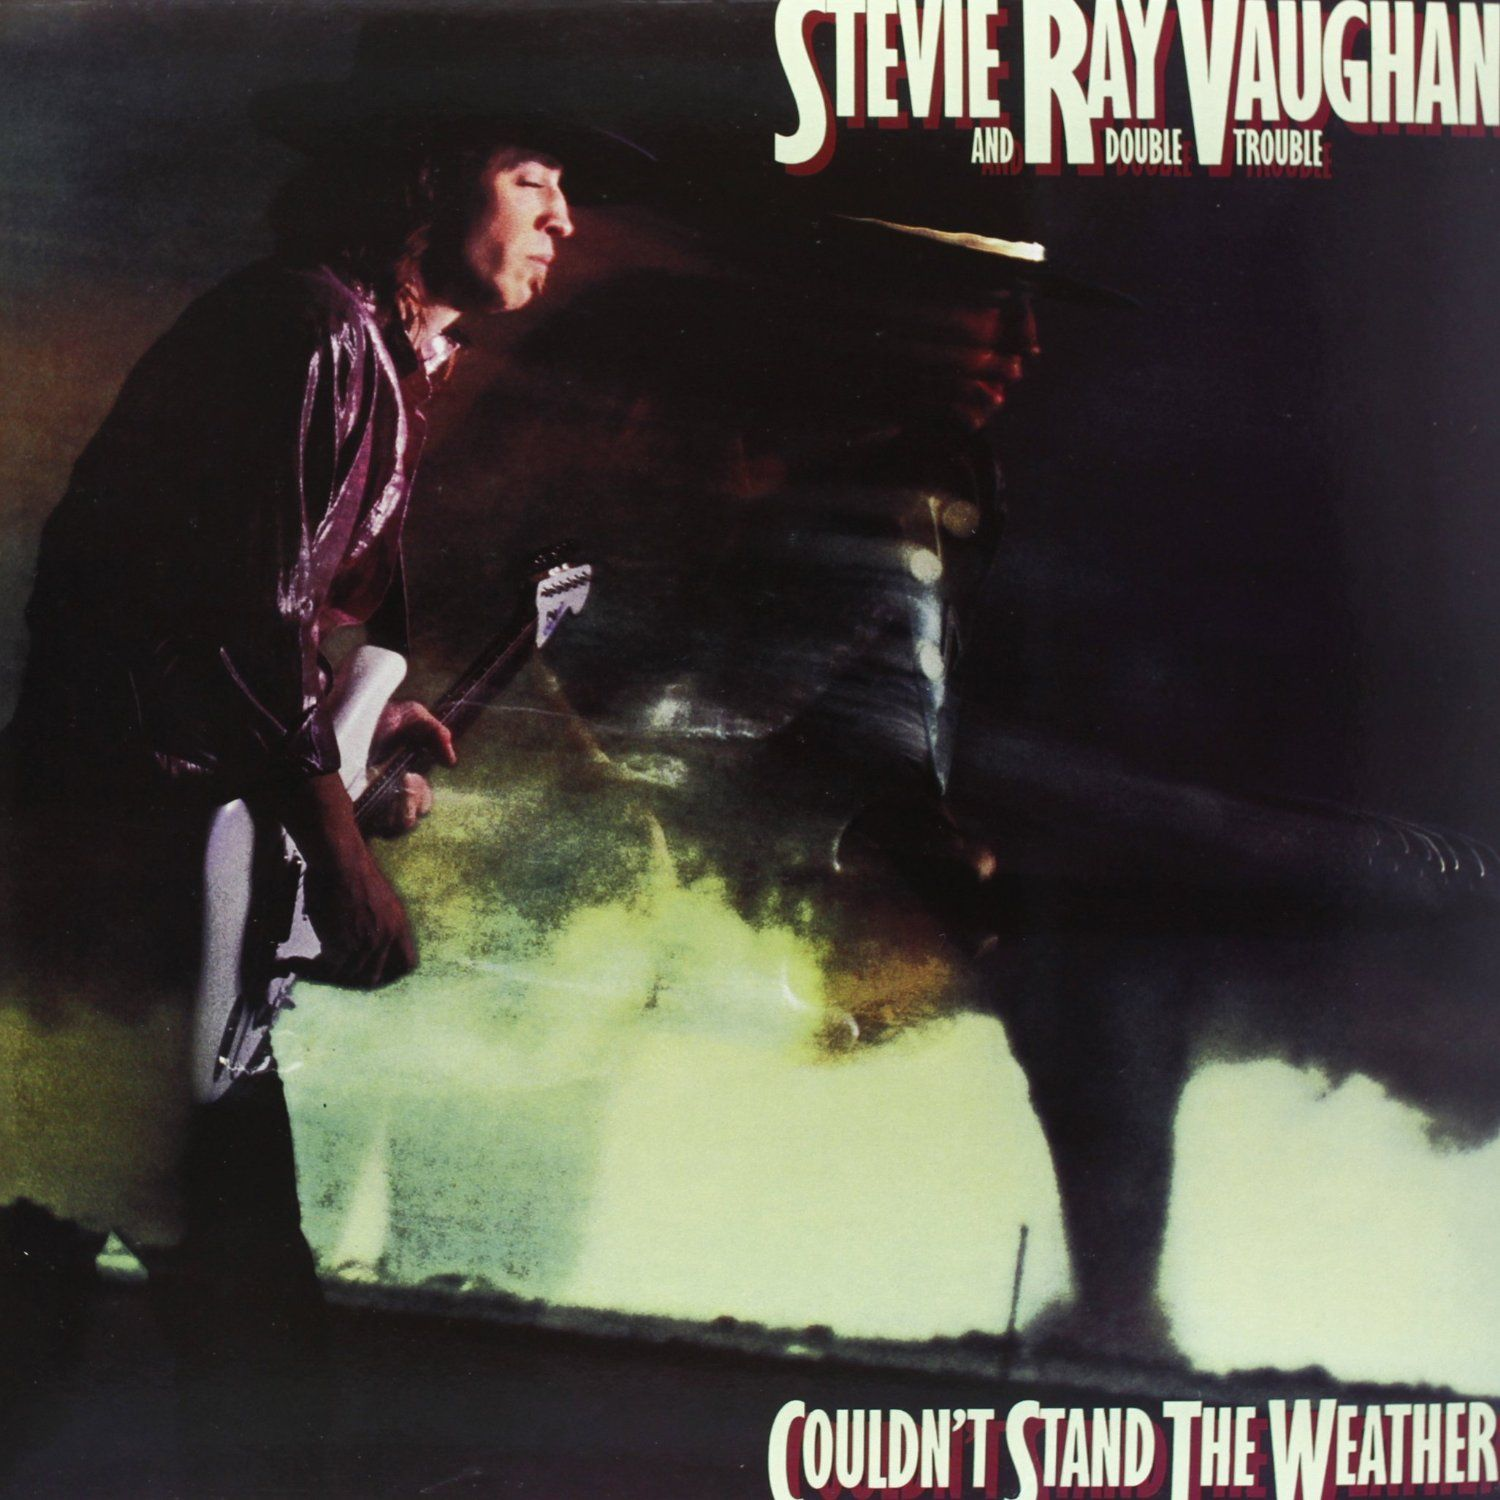 Ray Vaughan Couldn T Stand The Weather Stevie Ray